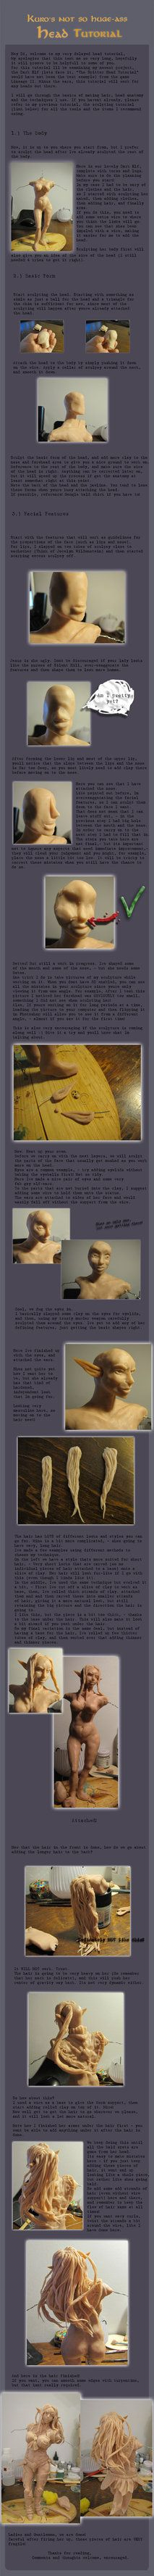 Head Sculpting Tutorial by *Kurokono on deviantART